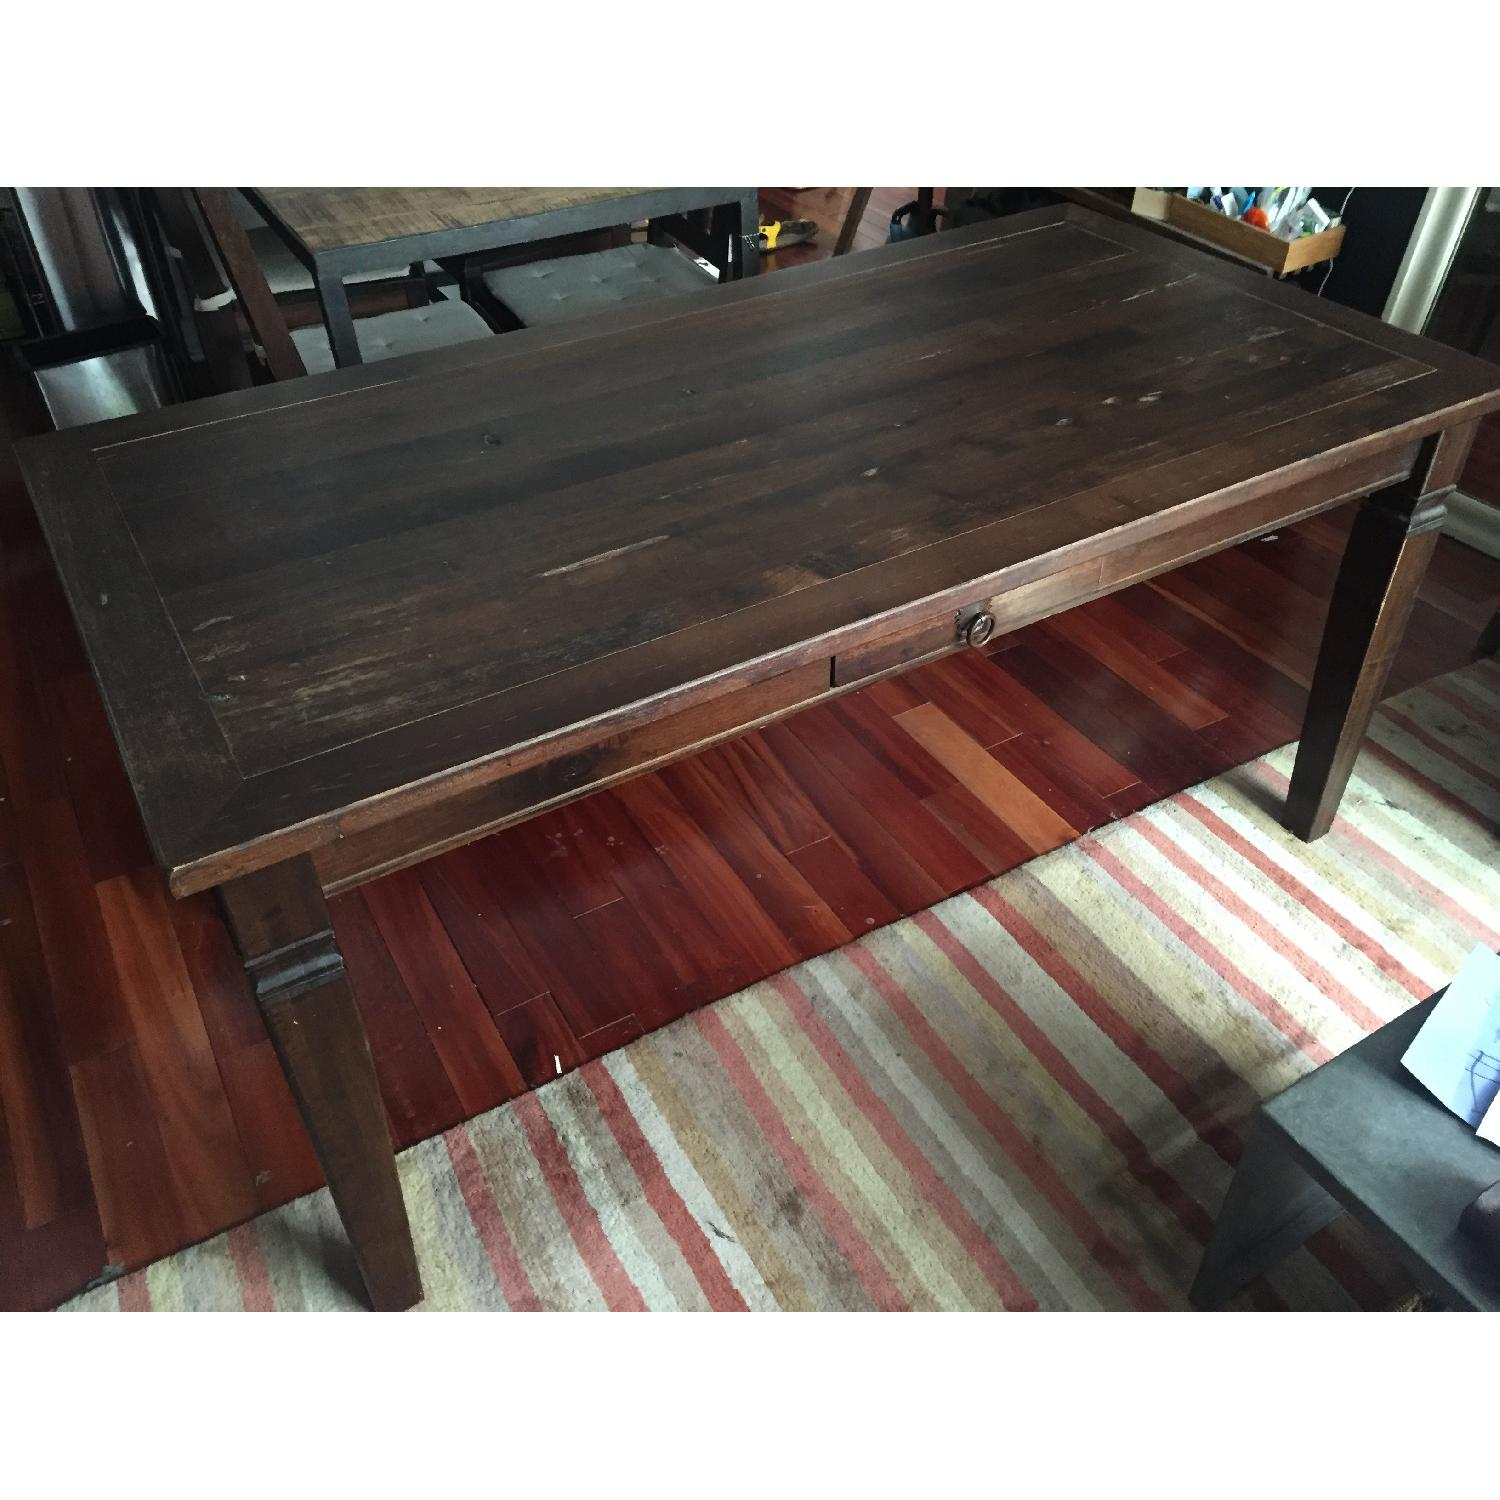 Dark Stained Wood Farm Table w/ 4 Chairs - image-2